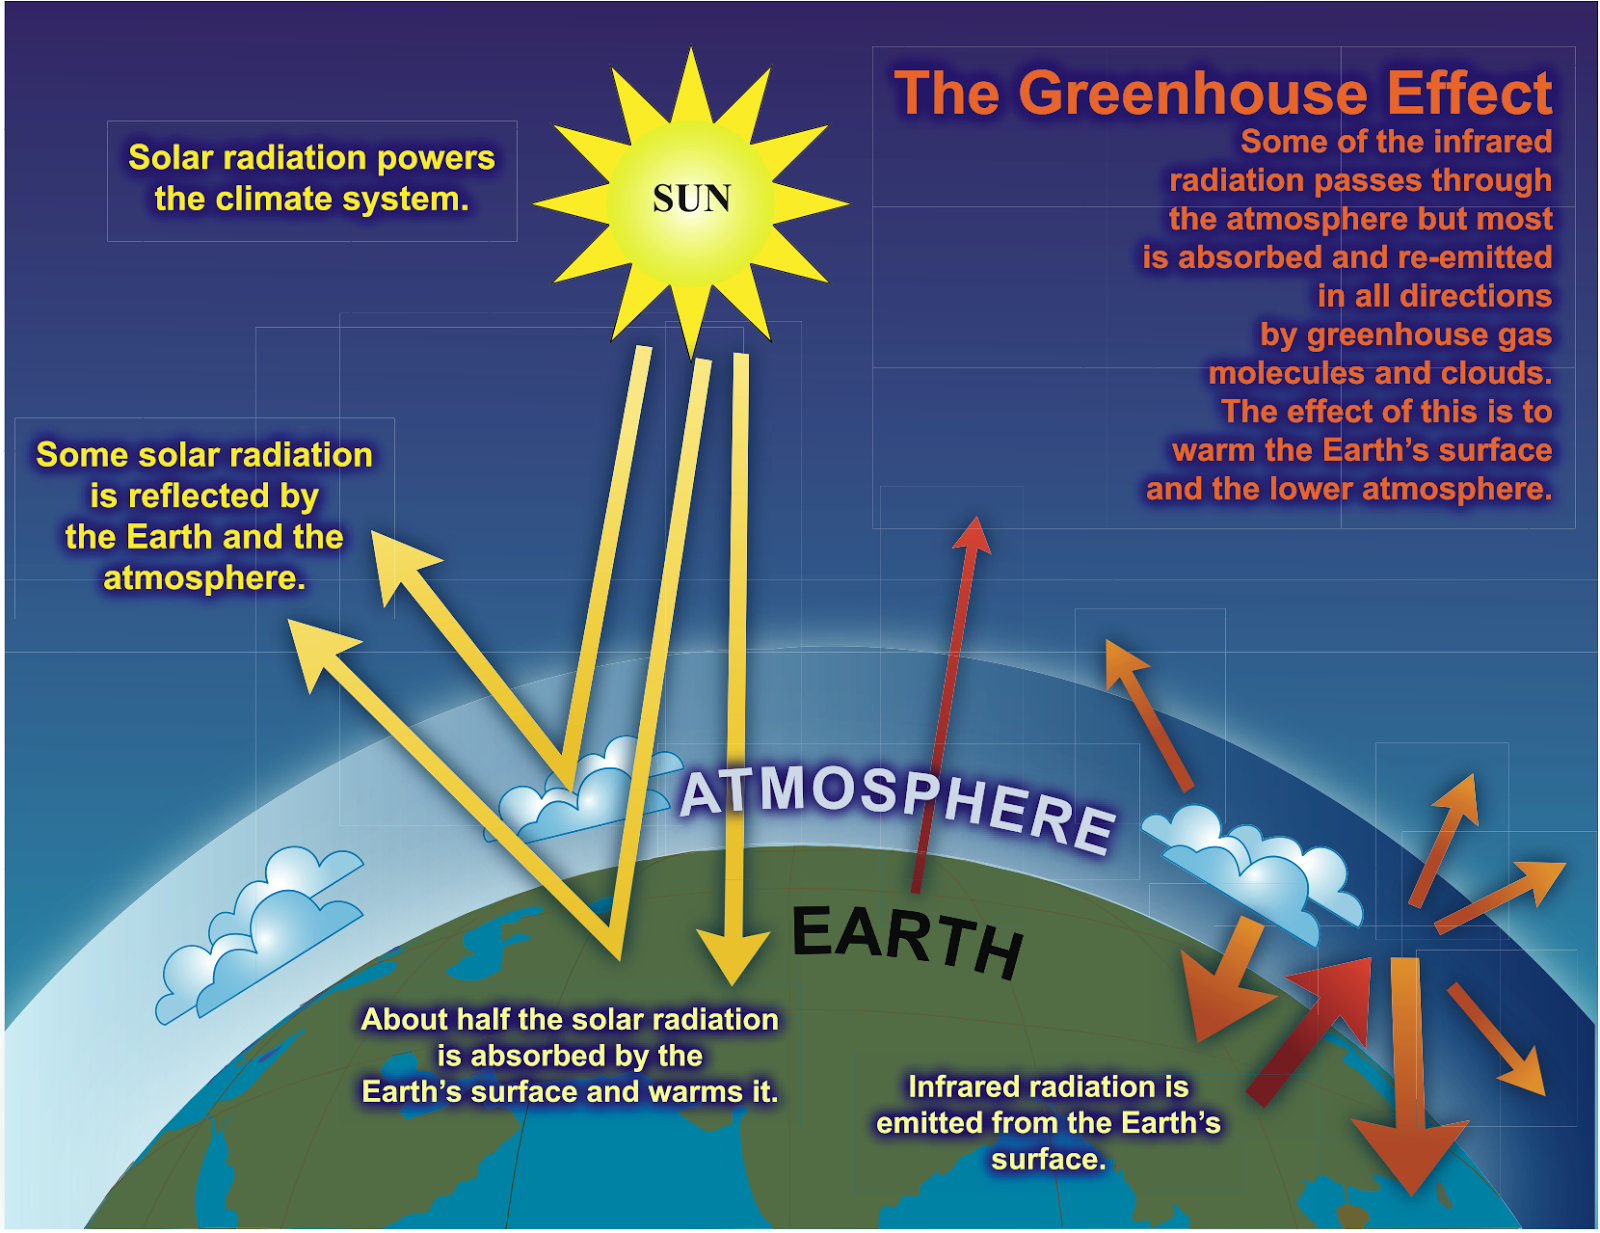 Science online the negative effects of the global warming for Green housse effect